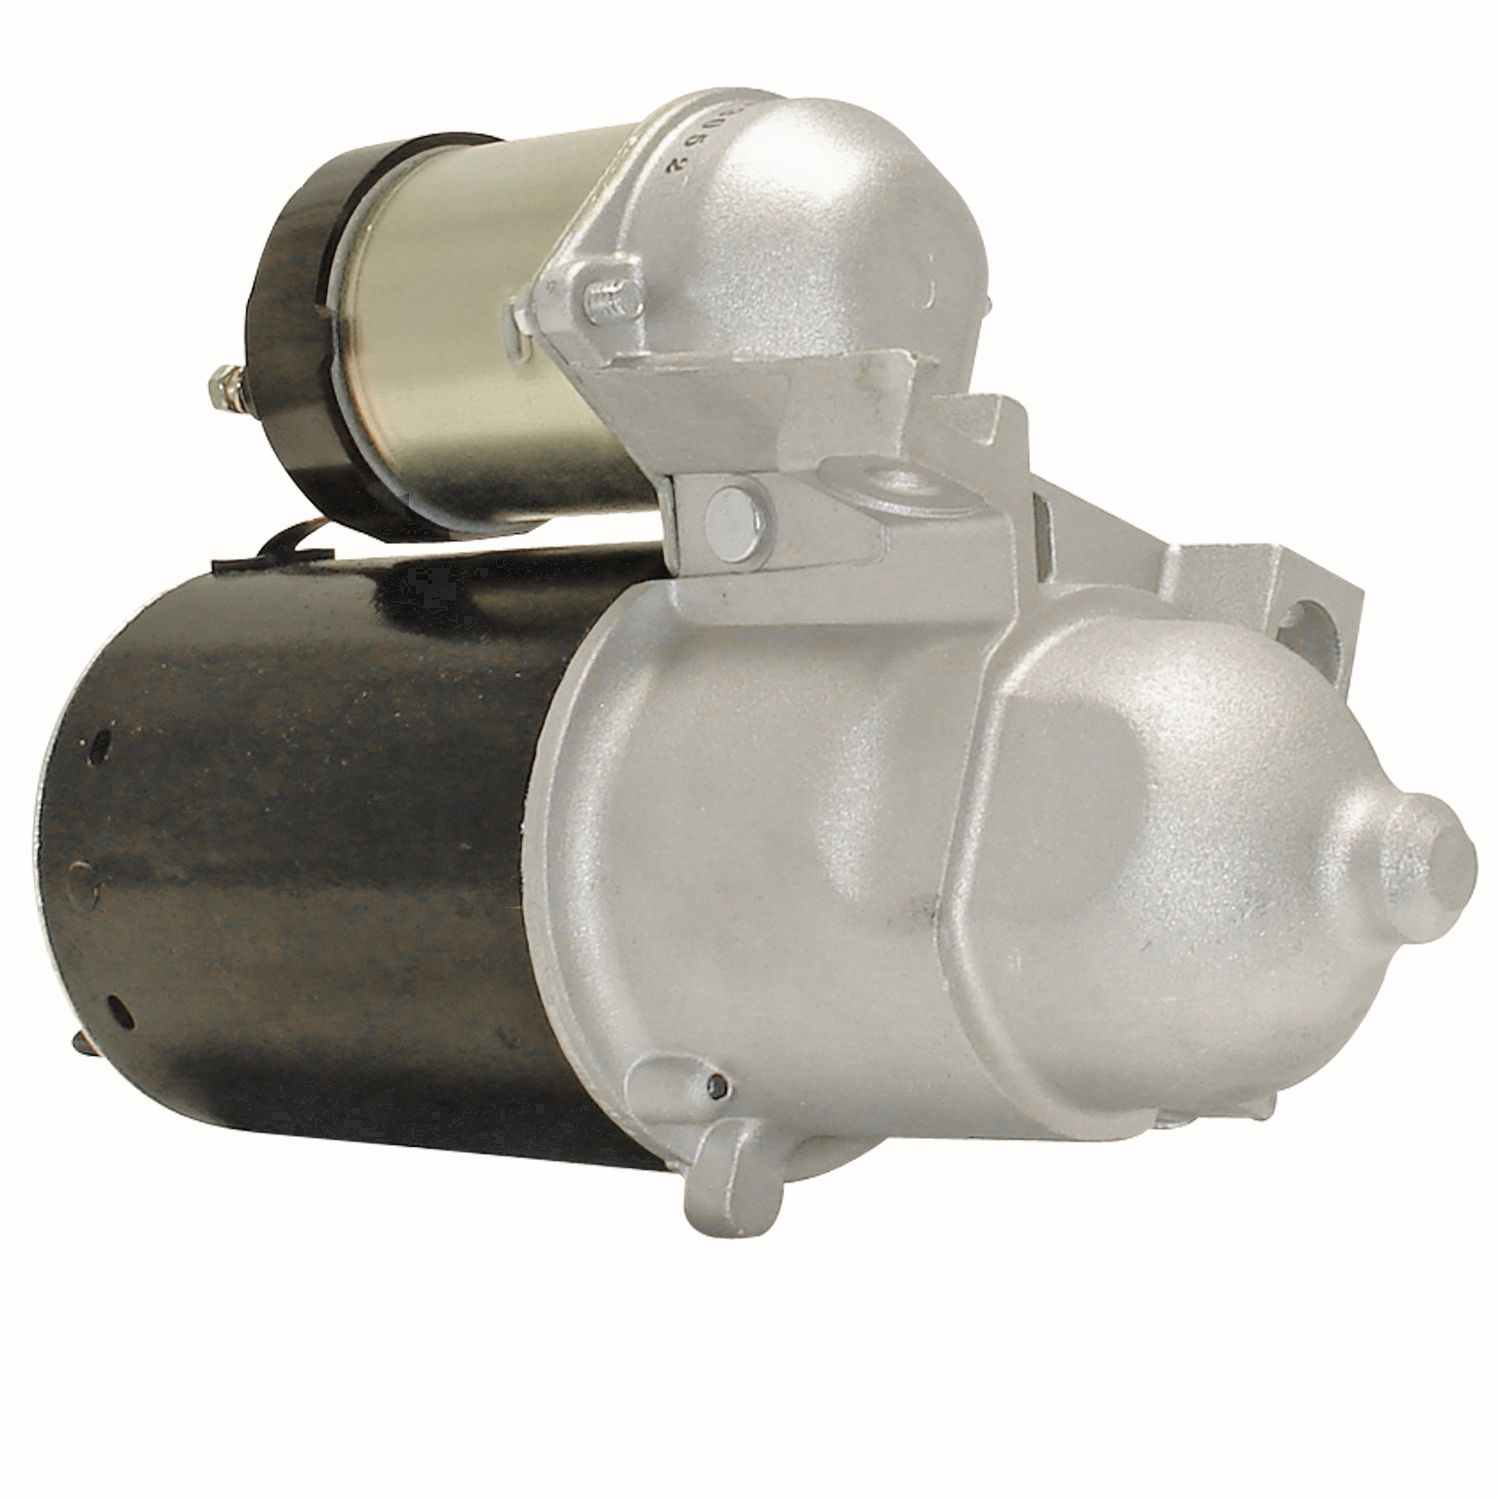 ACDELCO GOLD/PROFESSIONAL - Reman Starter Motor - DCC 336-1121A